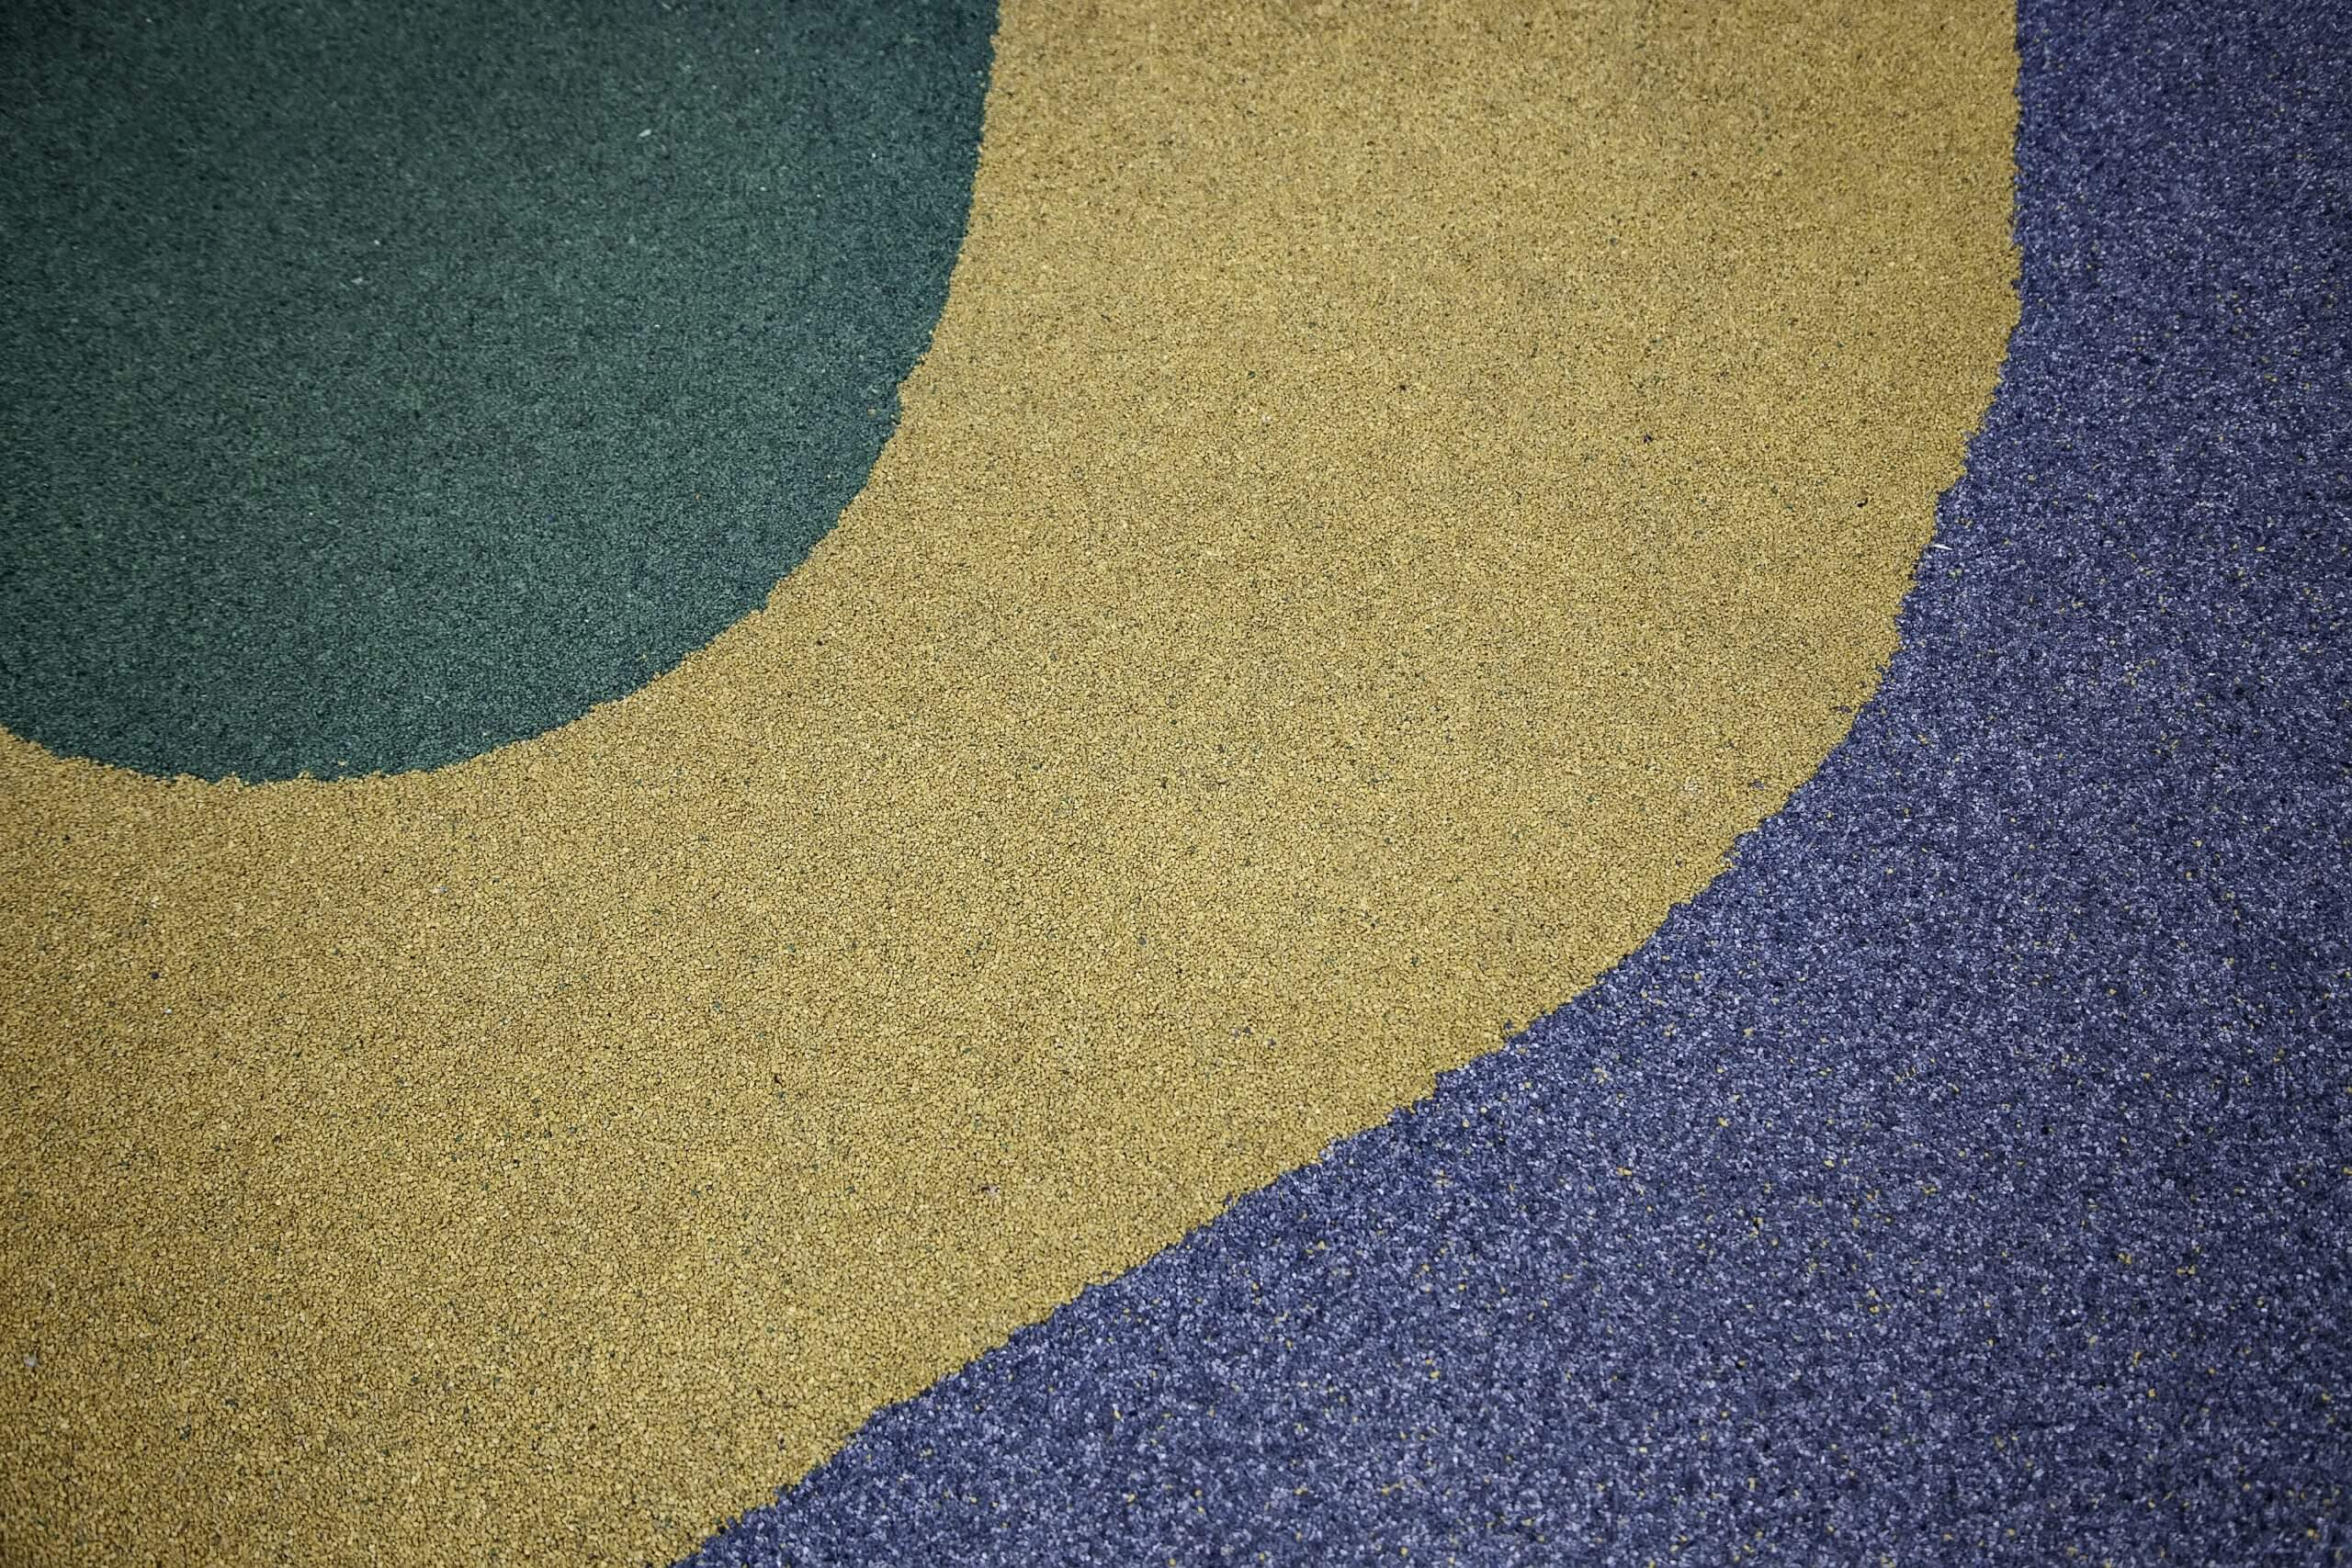 Colored rubber floor, decoration and safety detail